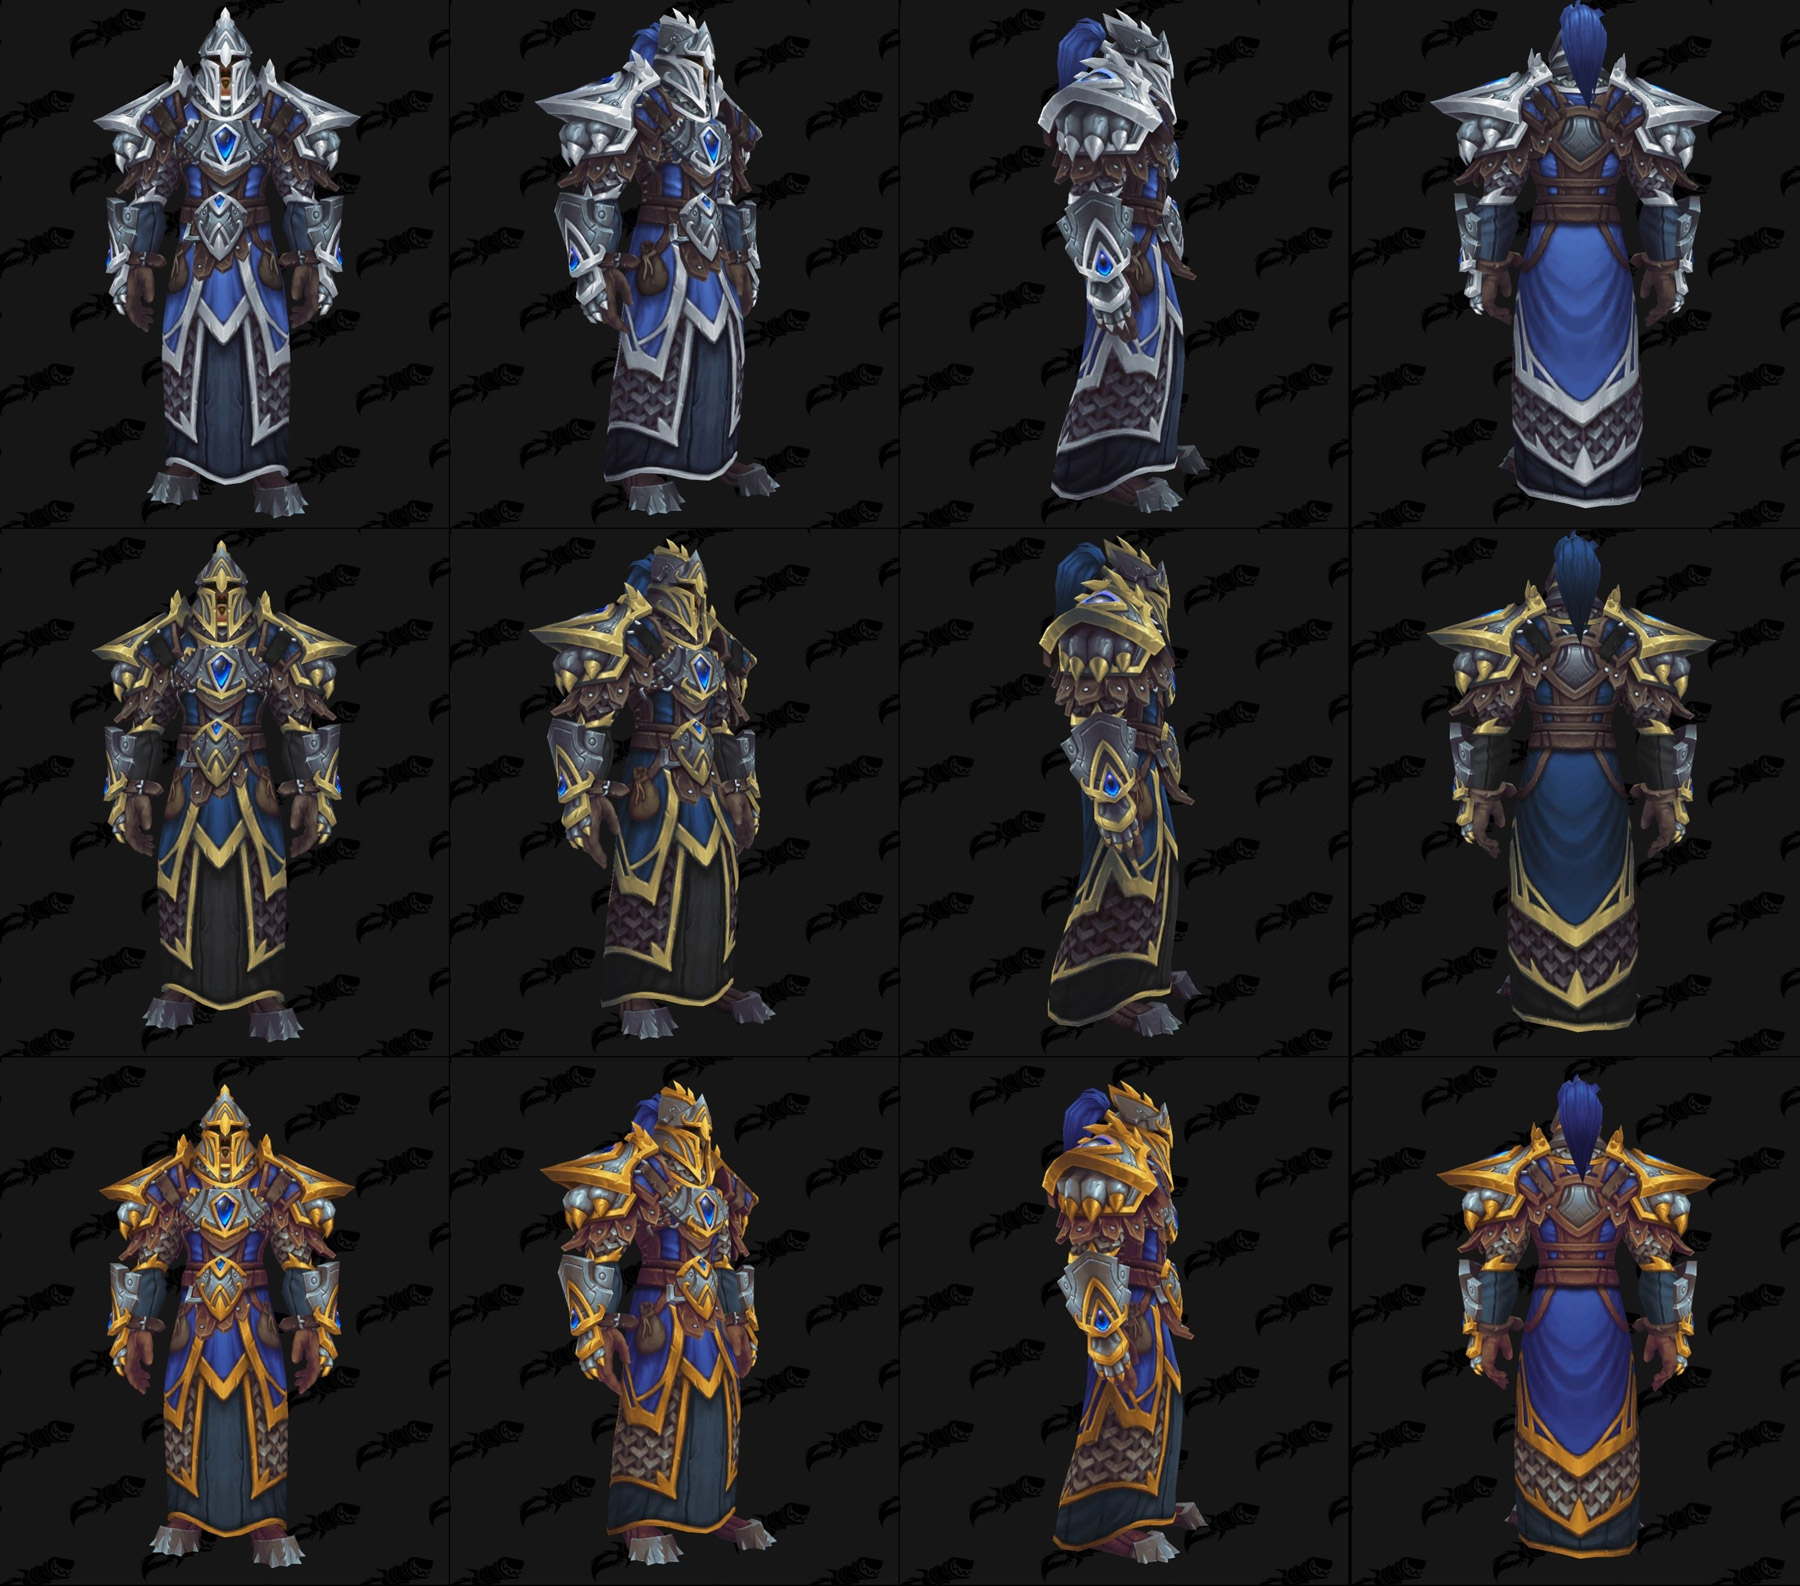 Ensembles Front de guerre (Alliance) en maille - Tier 3 - Battle for Azeroth